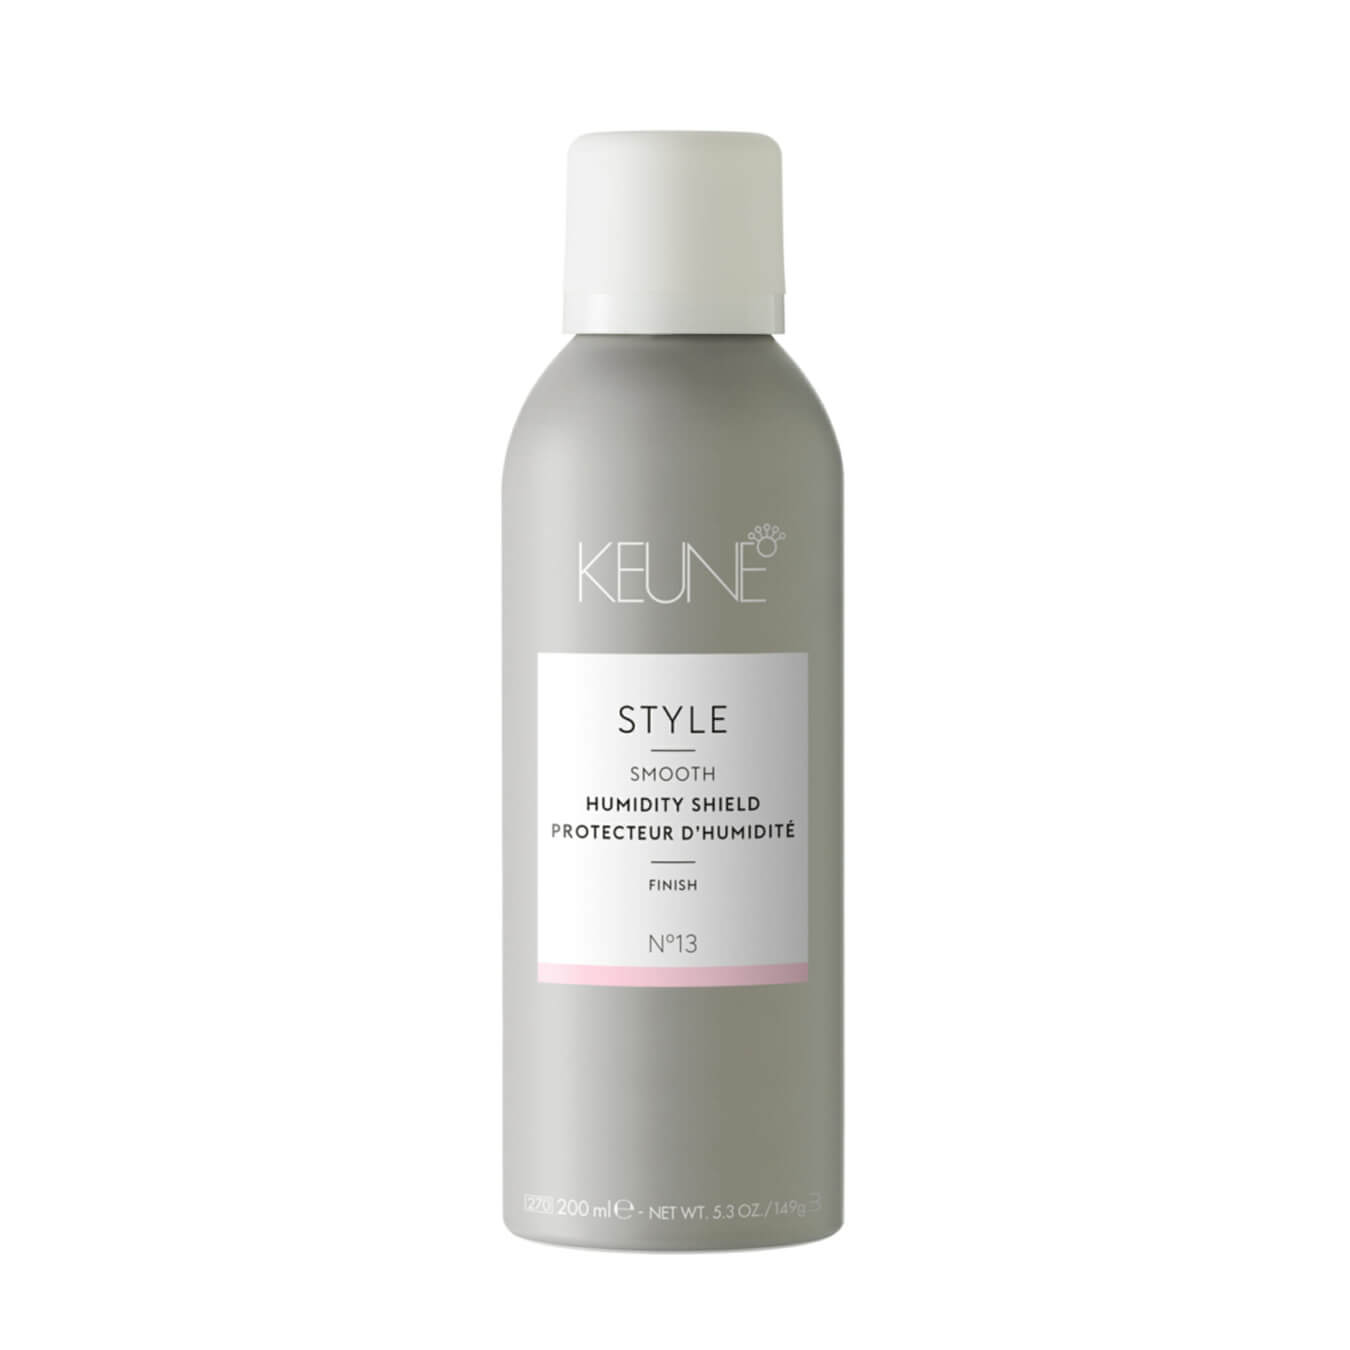 Koop Keune Style Humidity Shield 200ml